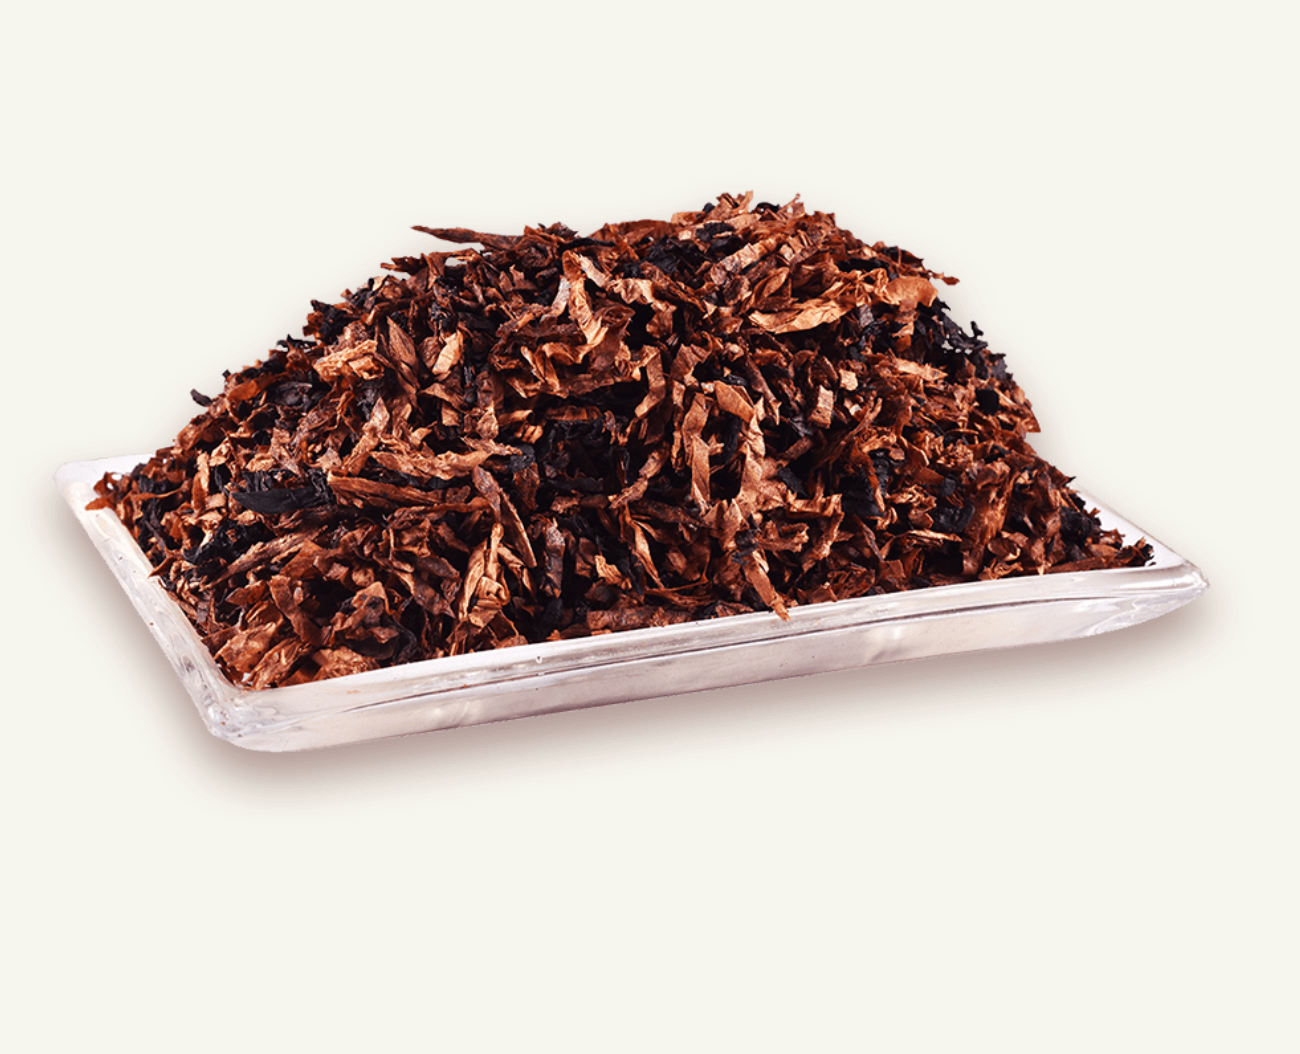 Sutliff Super Value Chocolate Pipe Tobacco Per oz